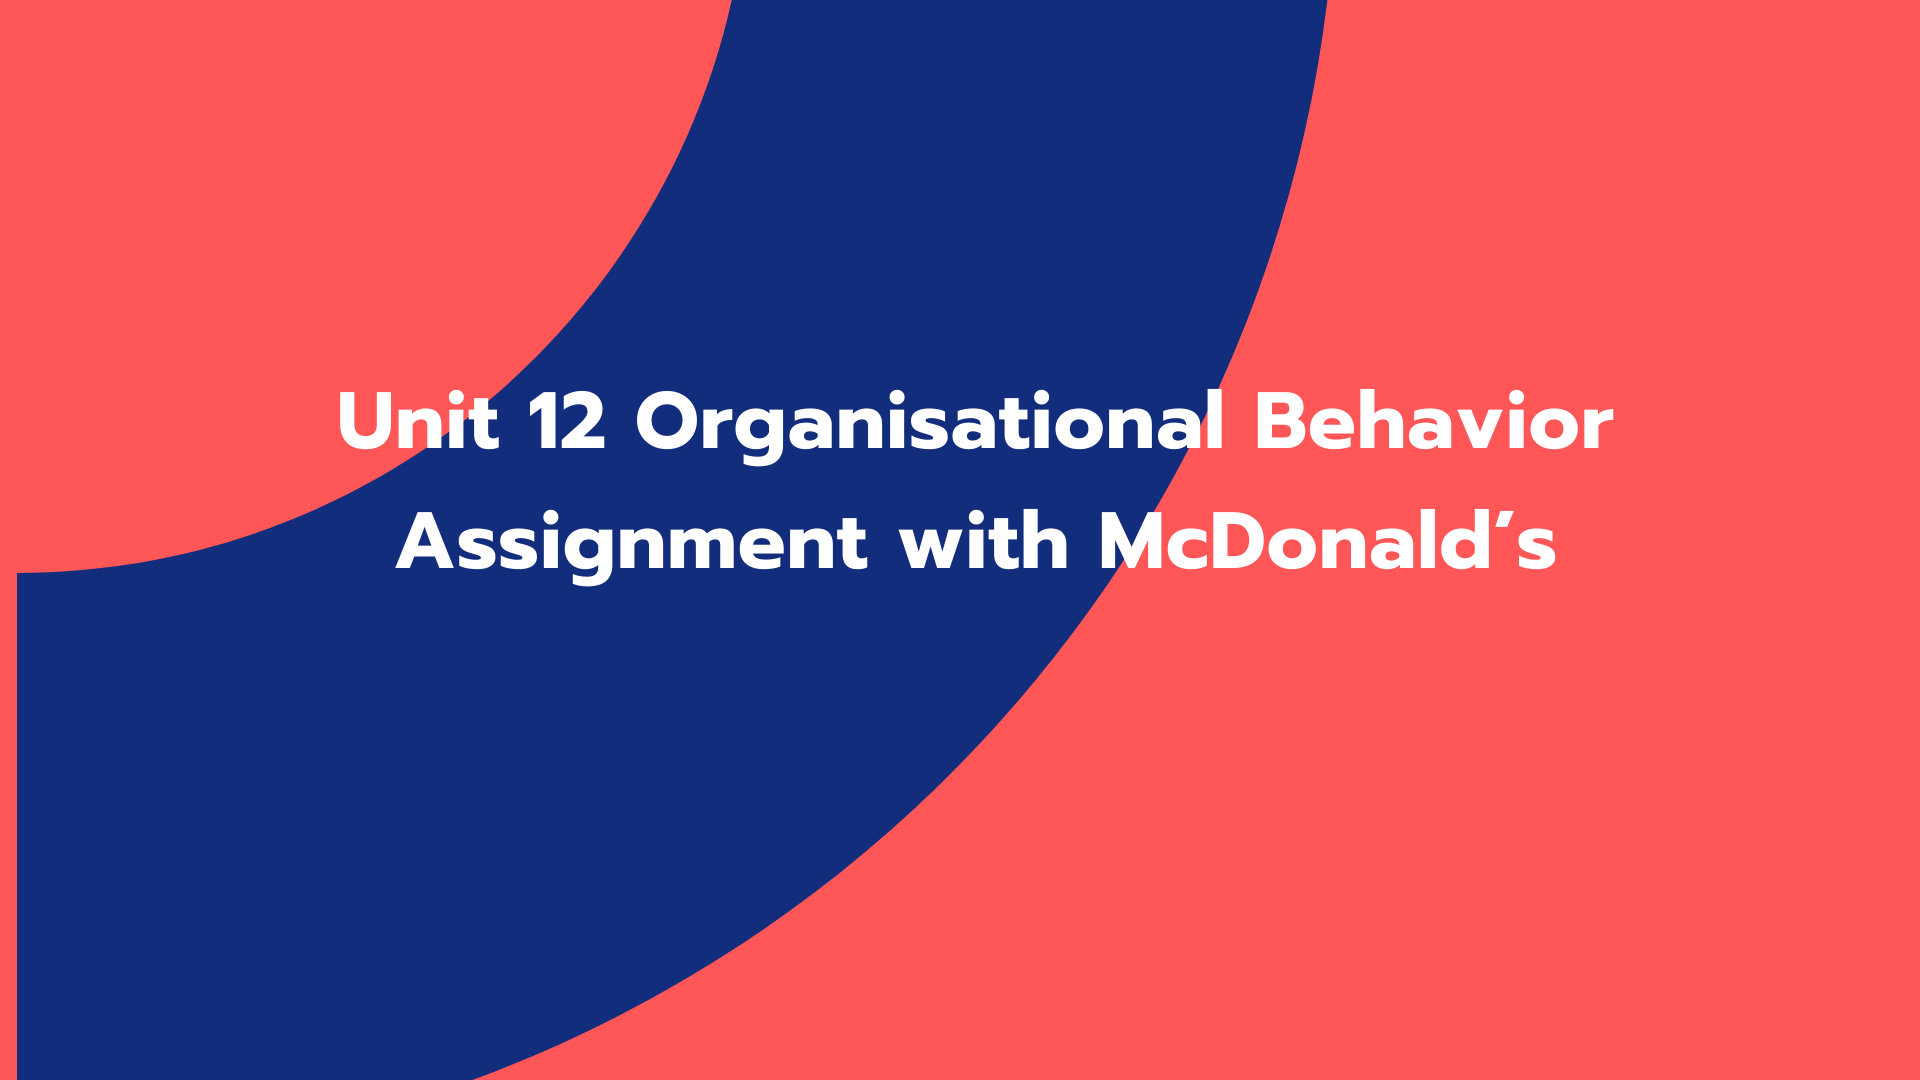 Unit 12 Organisational Behavior Assignment with McDonald's